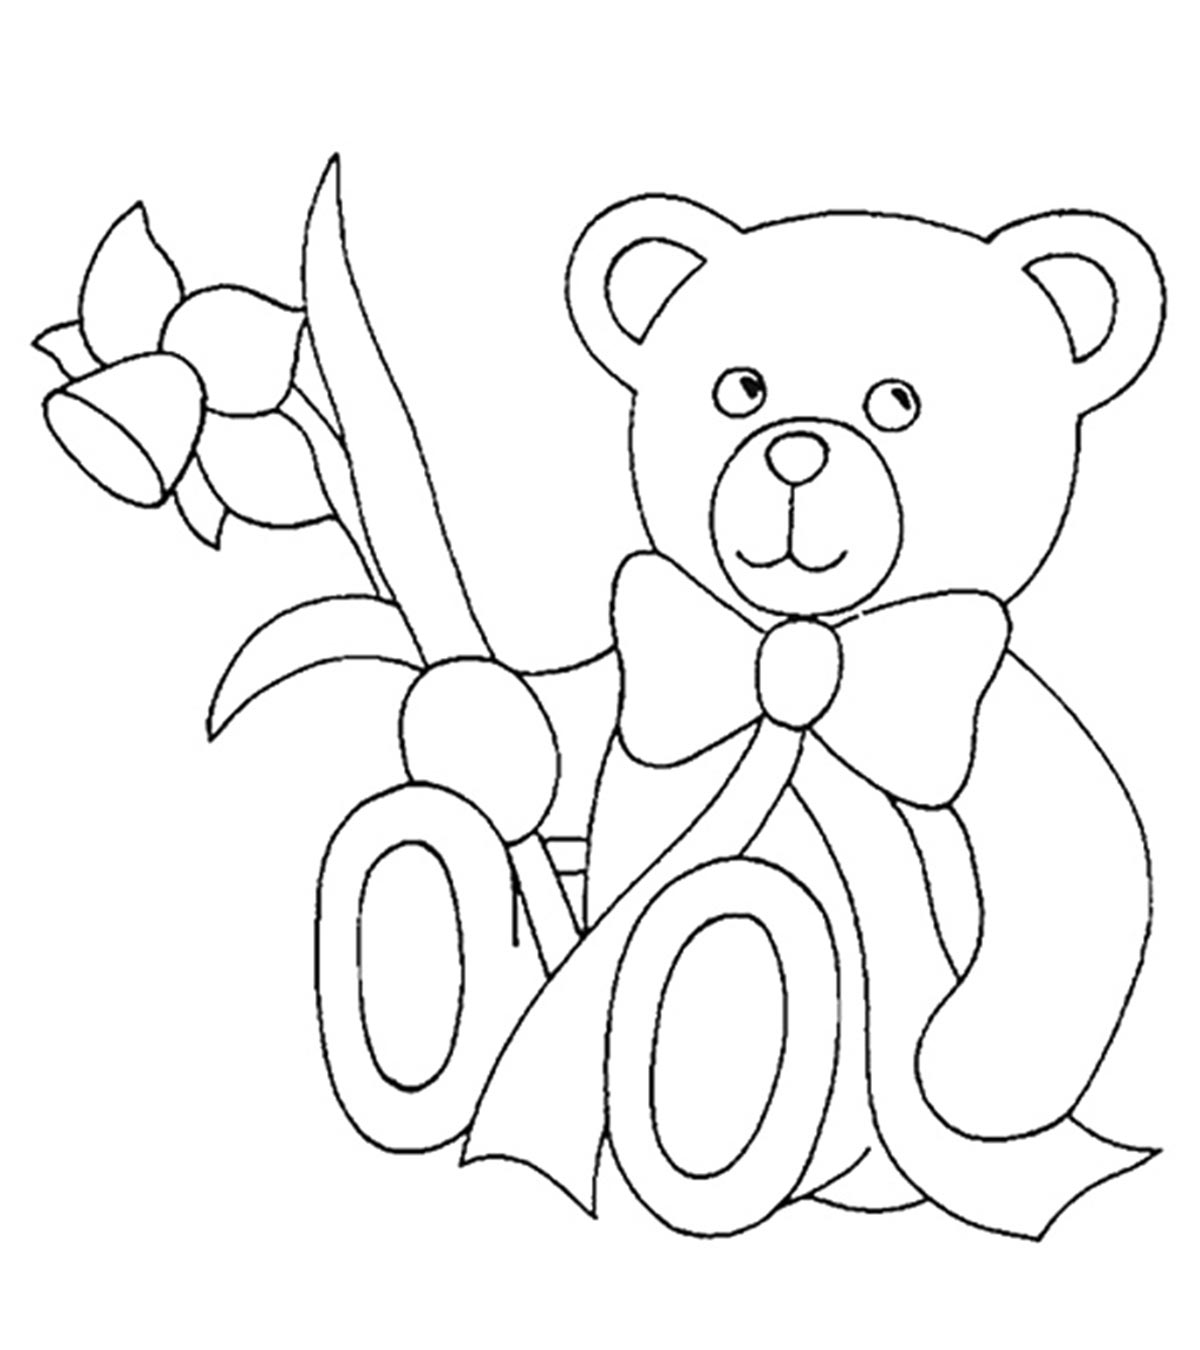 Free Toy Story 3 Coloring Pages, Download Free Clip Art, Free Clip ... | 1350x1200